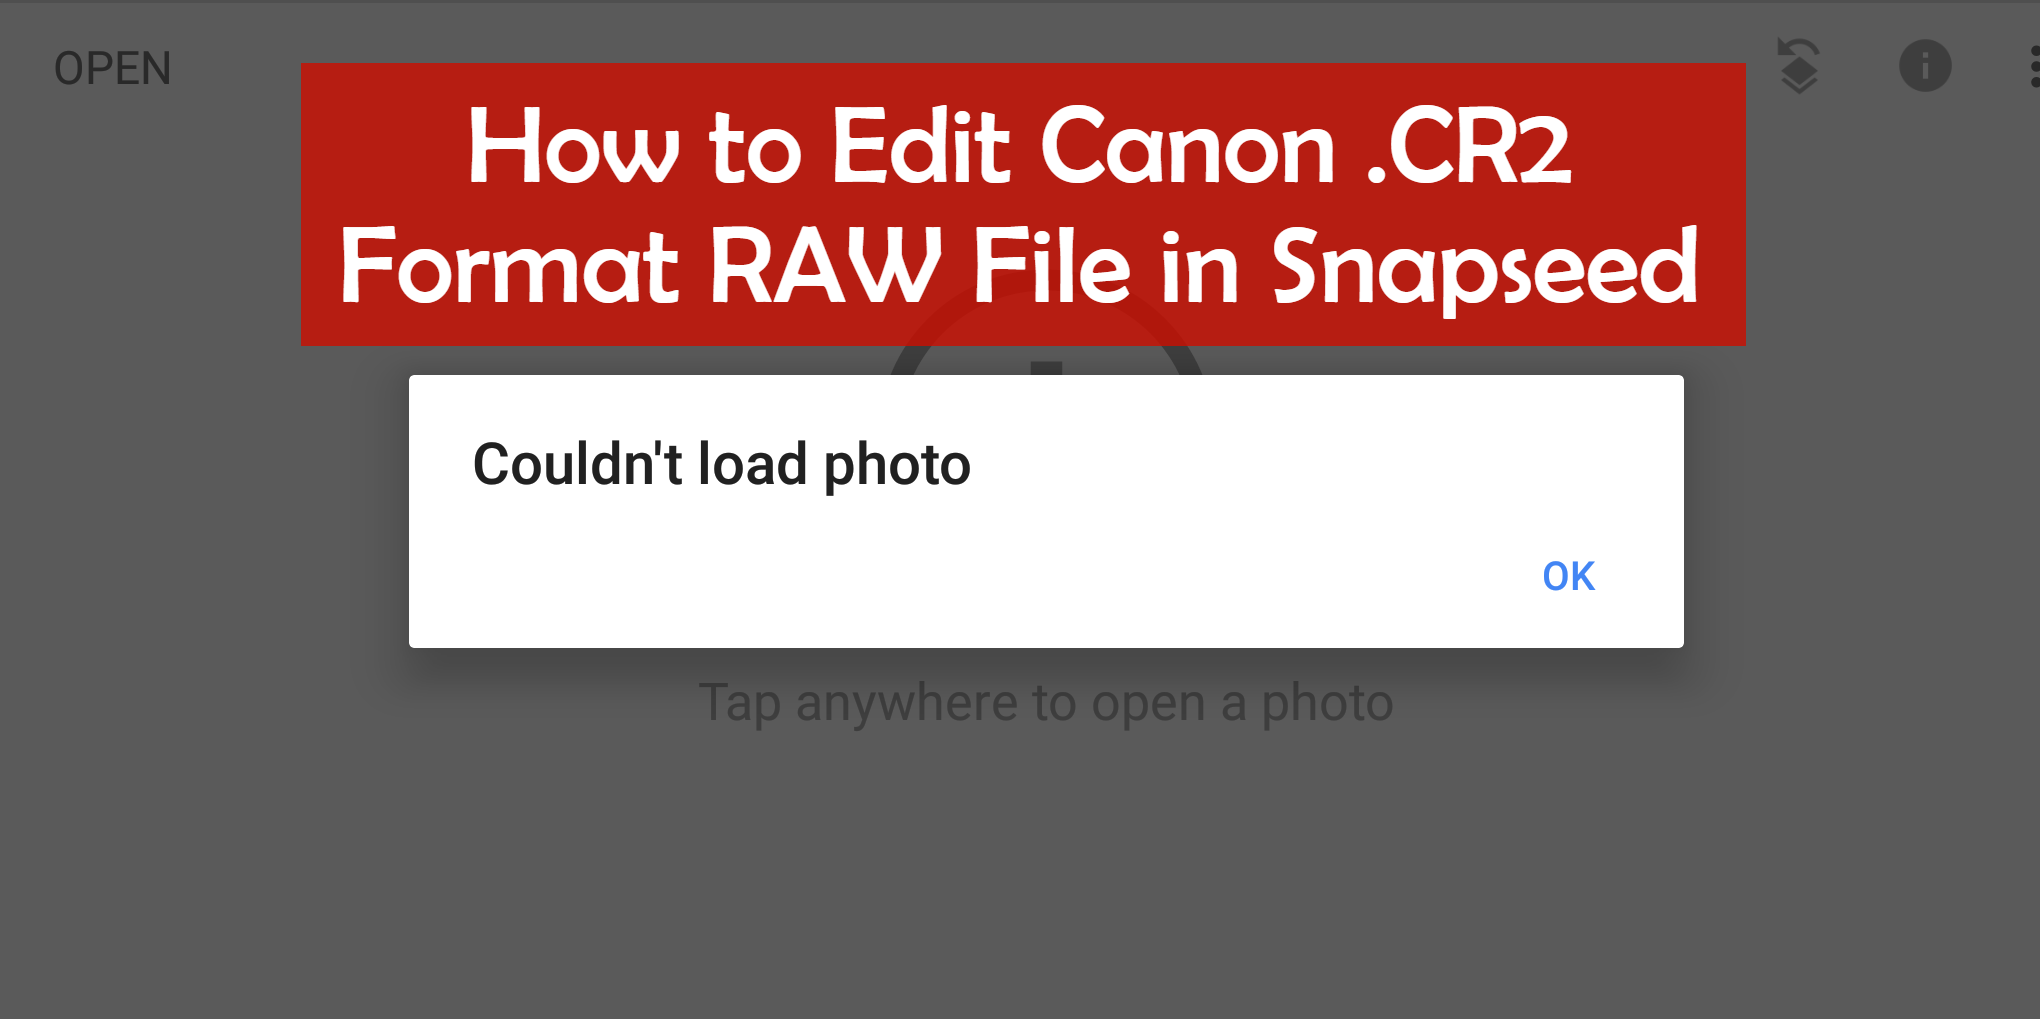 Solved: How to Edit Canon RAW CR2 Format Images in Snapseed